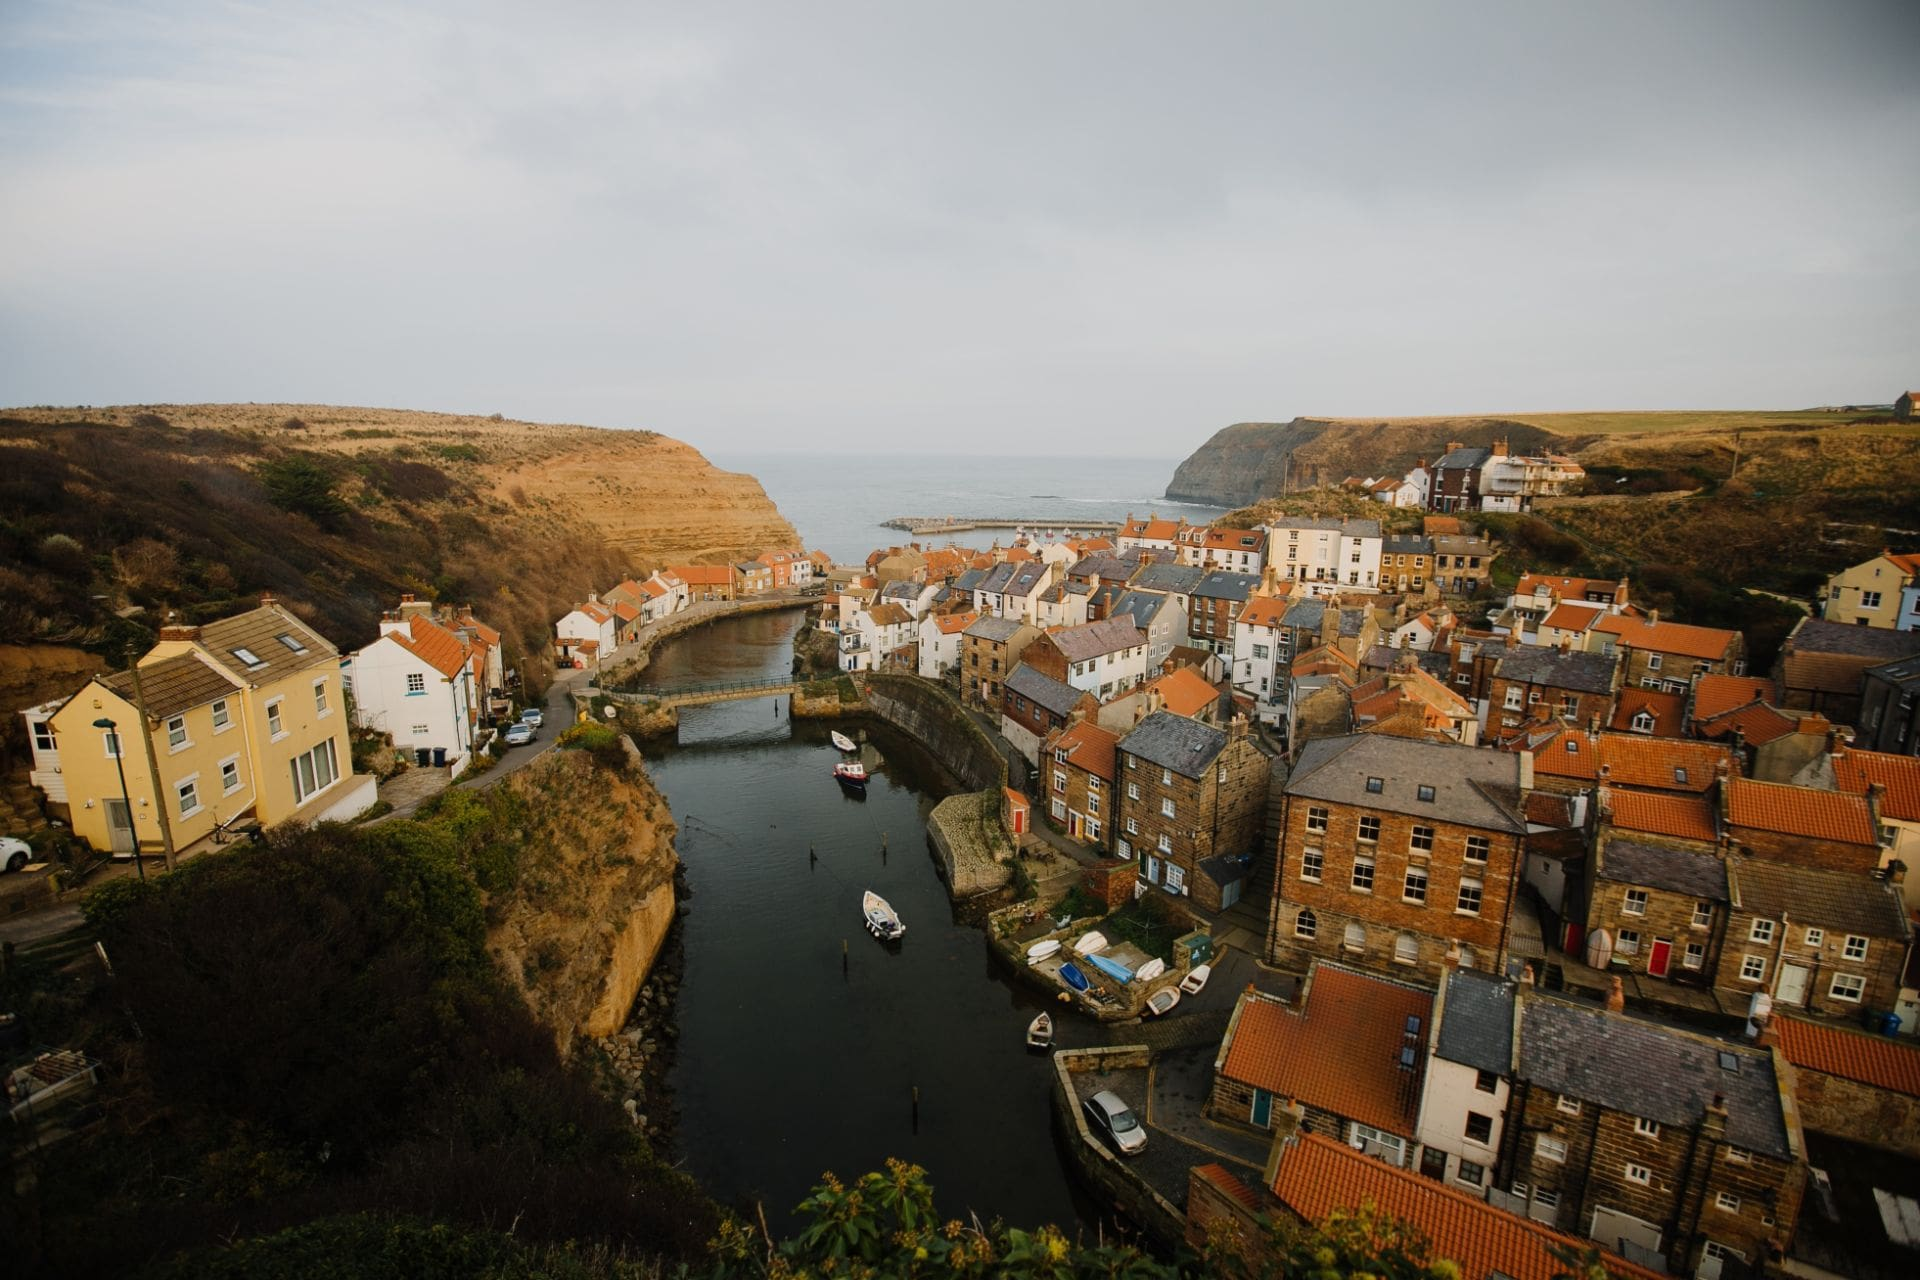 moody-british-seaside-town-with-orange-roofs-in-autumn-staithes-yorkshire